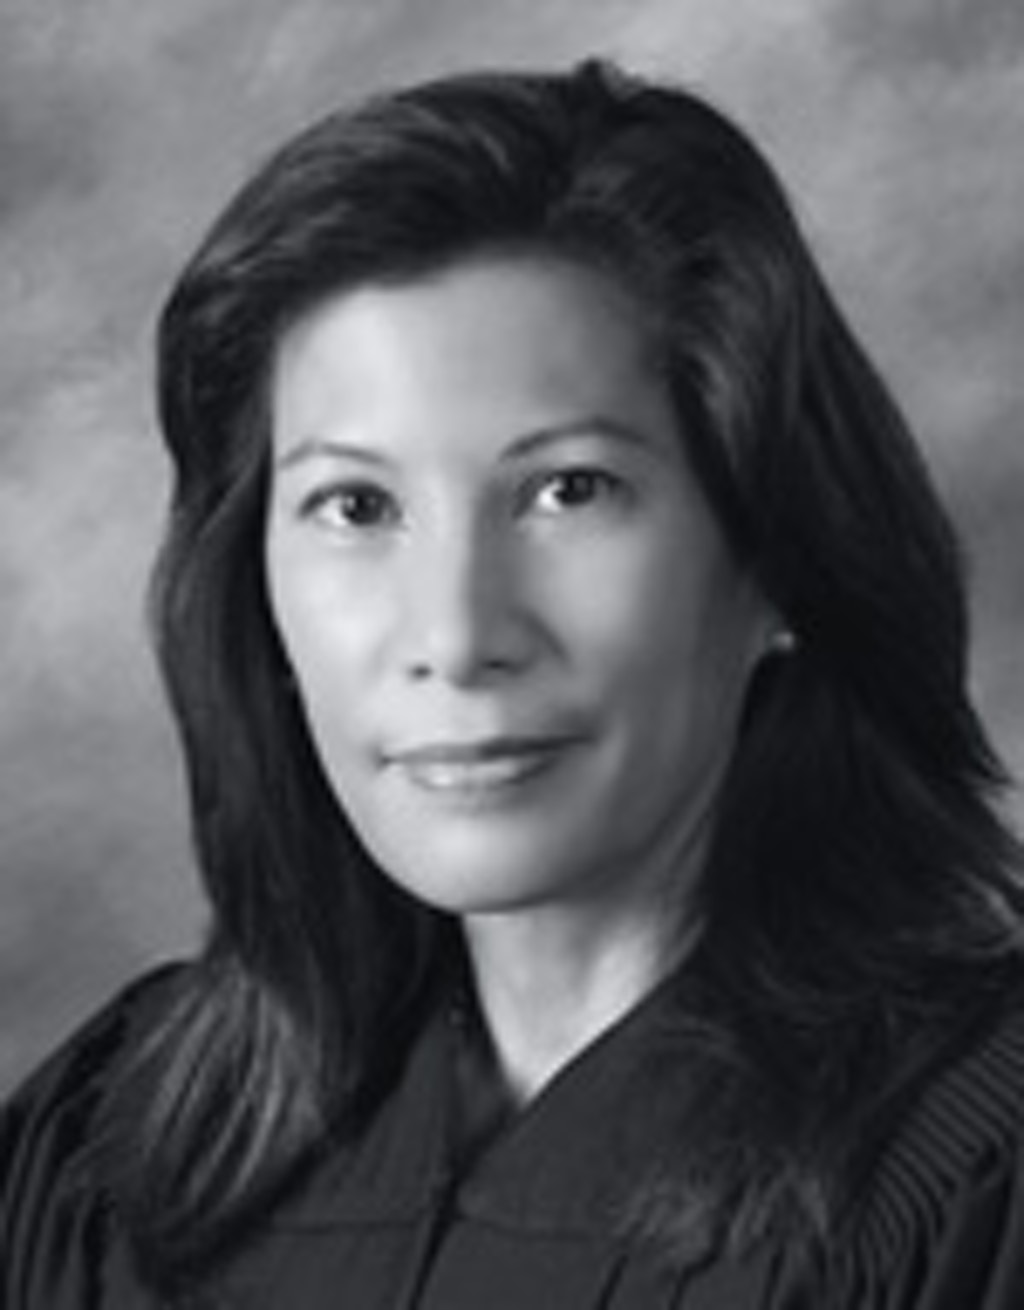 NEW VOICES: California's New Chief Justice Calls Death Penalty System Ineffective